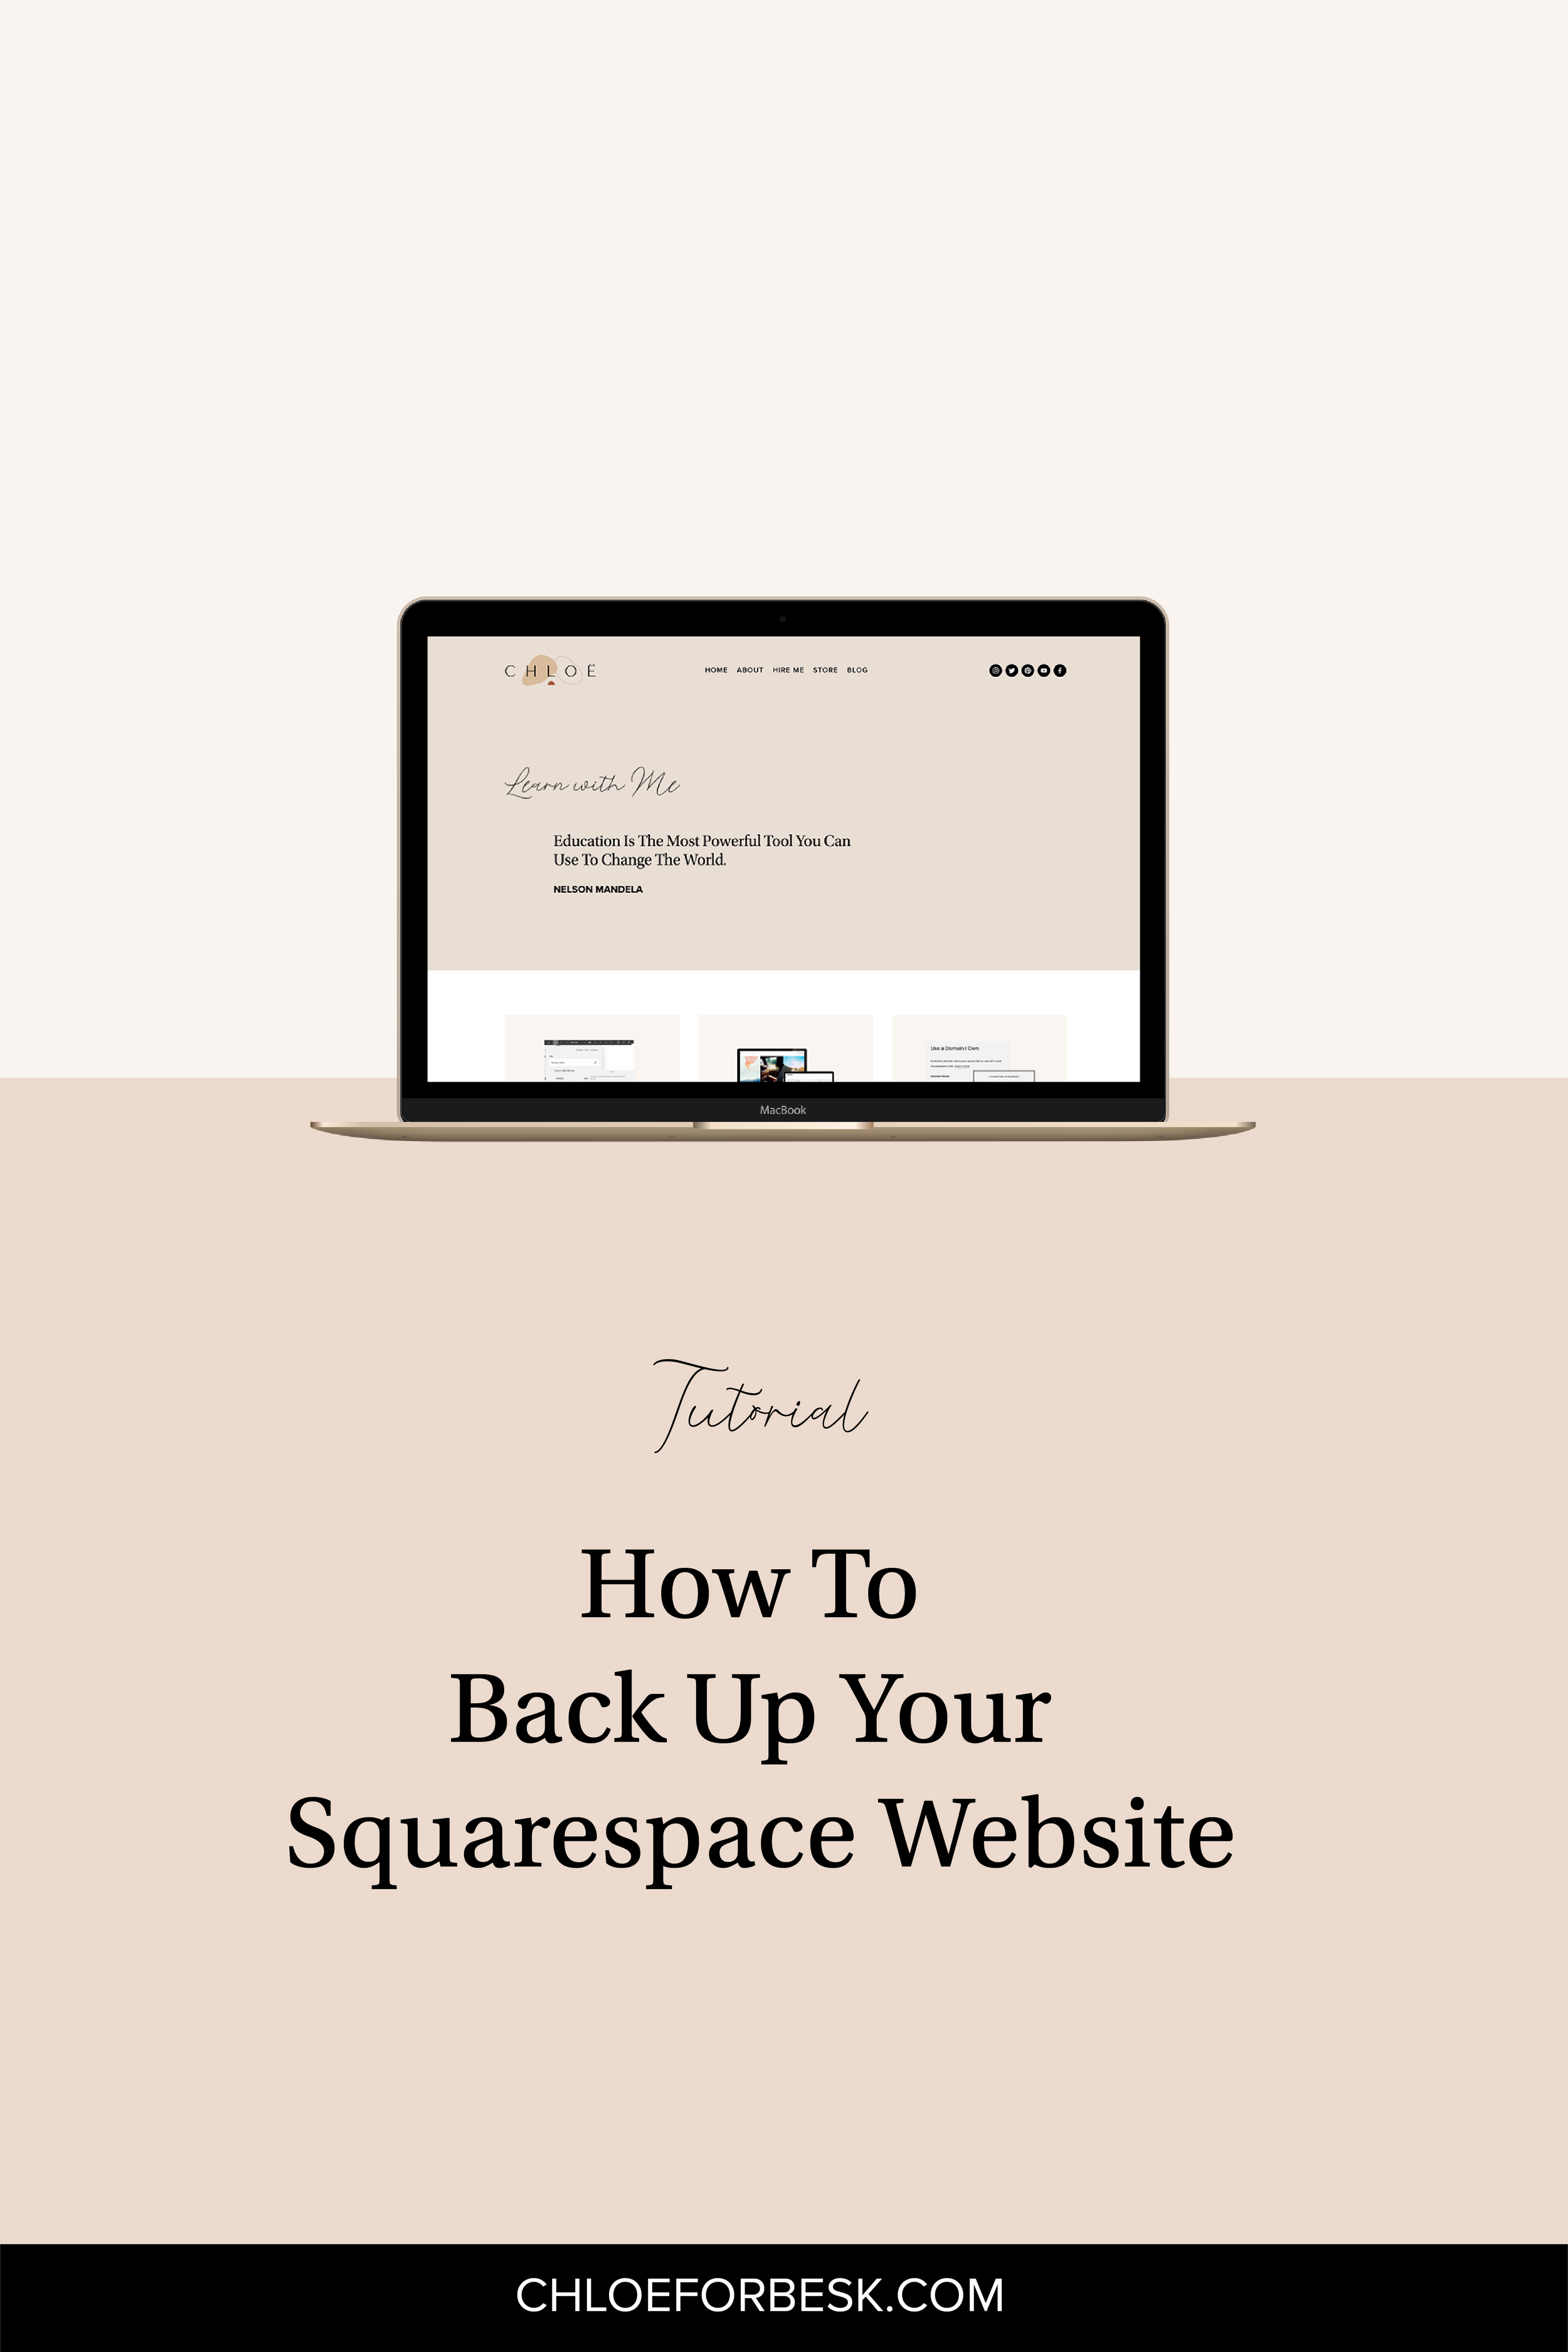 How To Back Up Your Squarespace Website-01.png